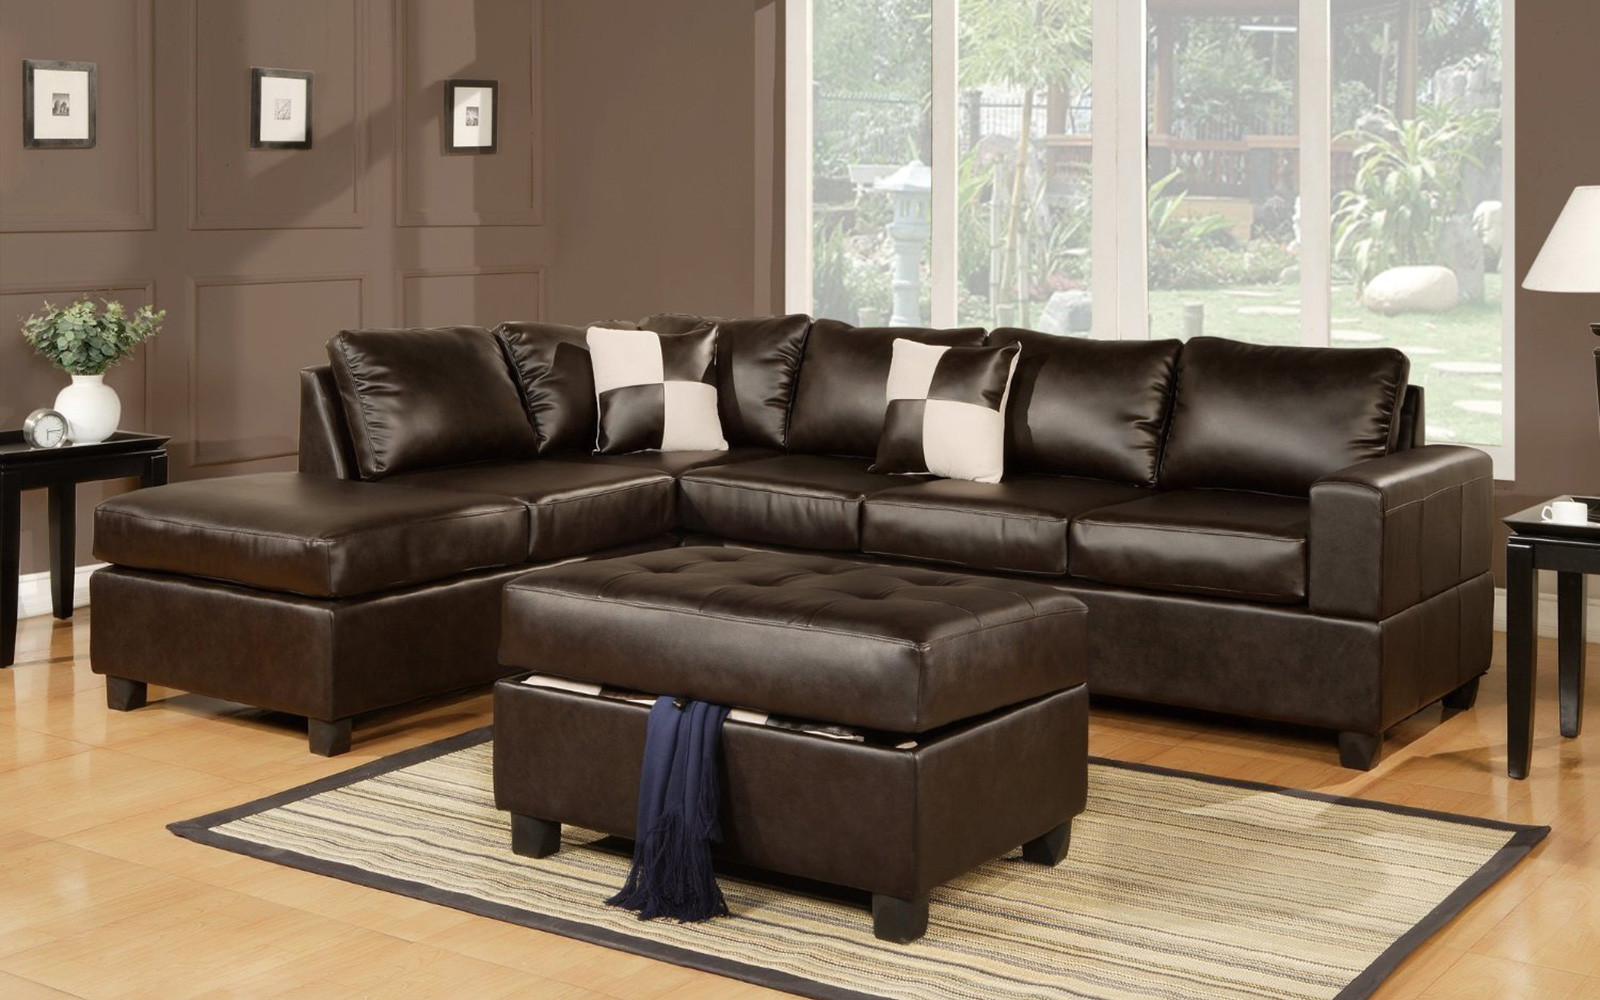 Merveilleux 3 Piece Modern Reversible Tufted Bonded Leather Sectional Sofa With Ottoman